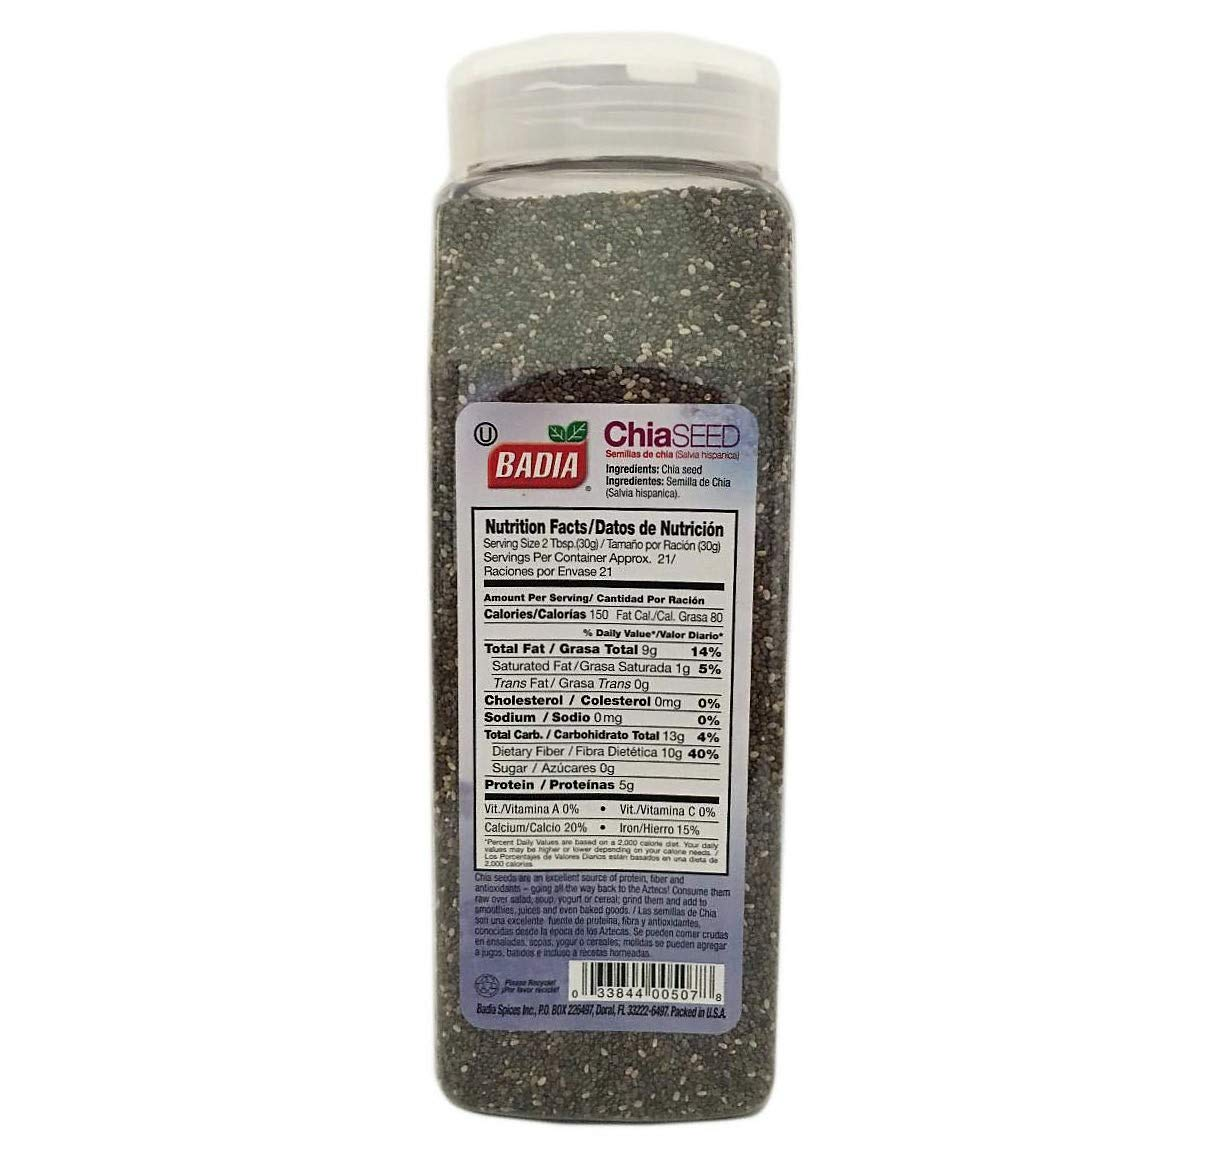 Amazon.com : 2 Pack Whole Chia Seeds/Semillas Salvia Hispanica Kosher 2x22 oz : Grocery & Gourmet Food